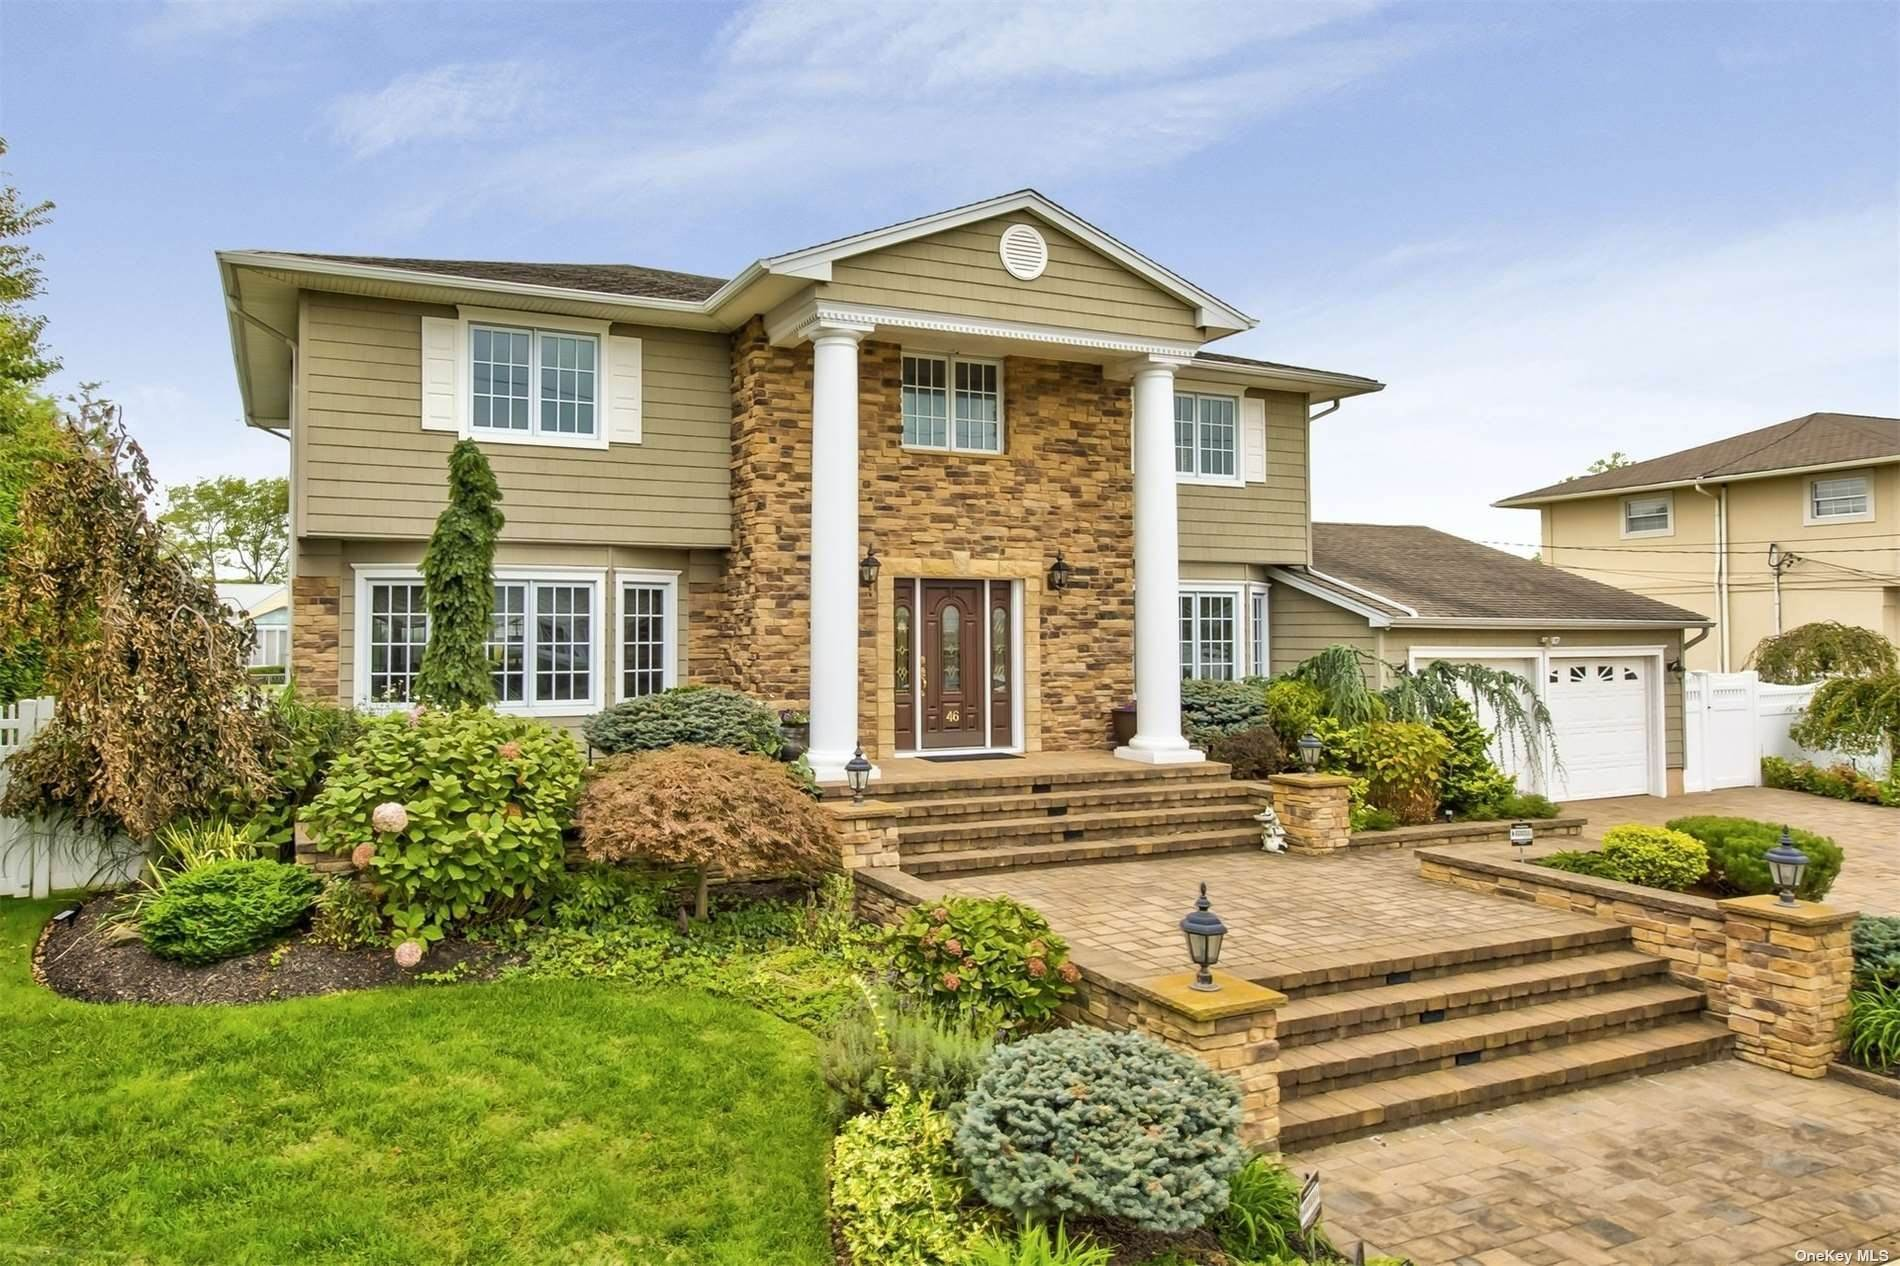 Residential for Sale at 46 Skylark Road Massapequa Park, New York 11762 United States